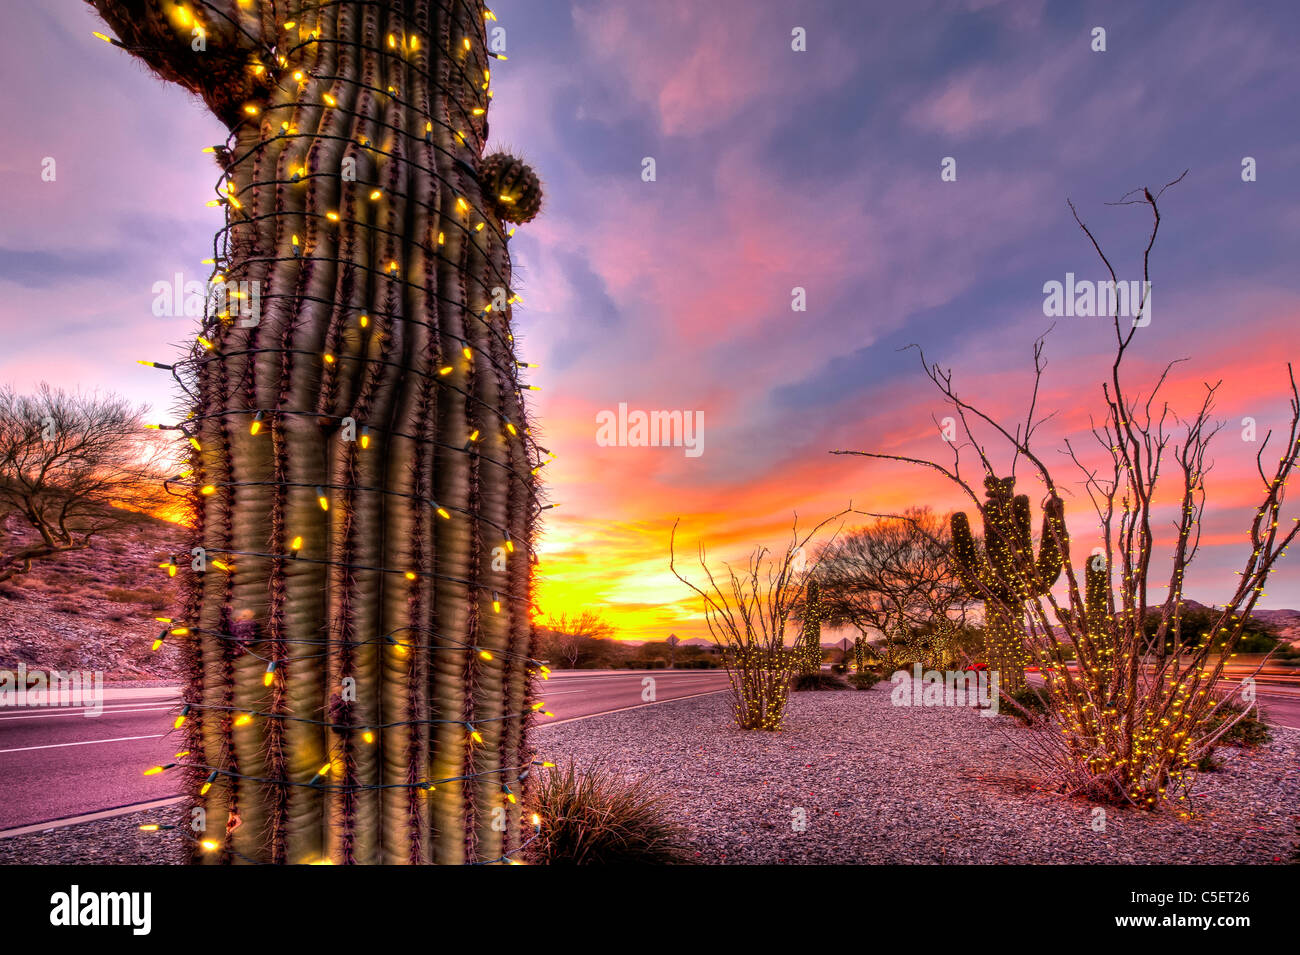 These huge Saguaro Cactus have been covered in Christmas lights